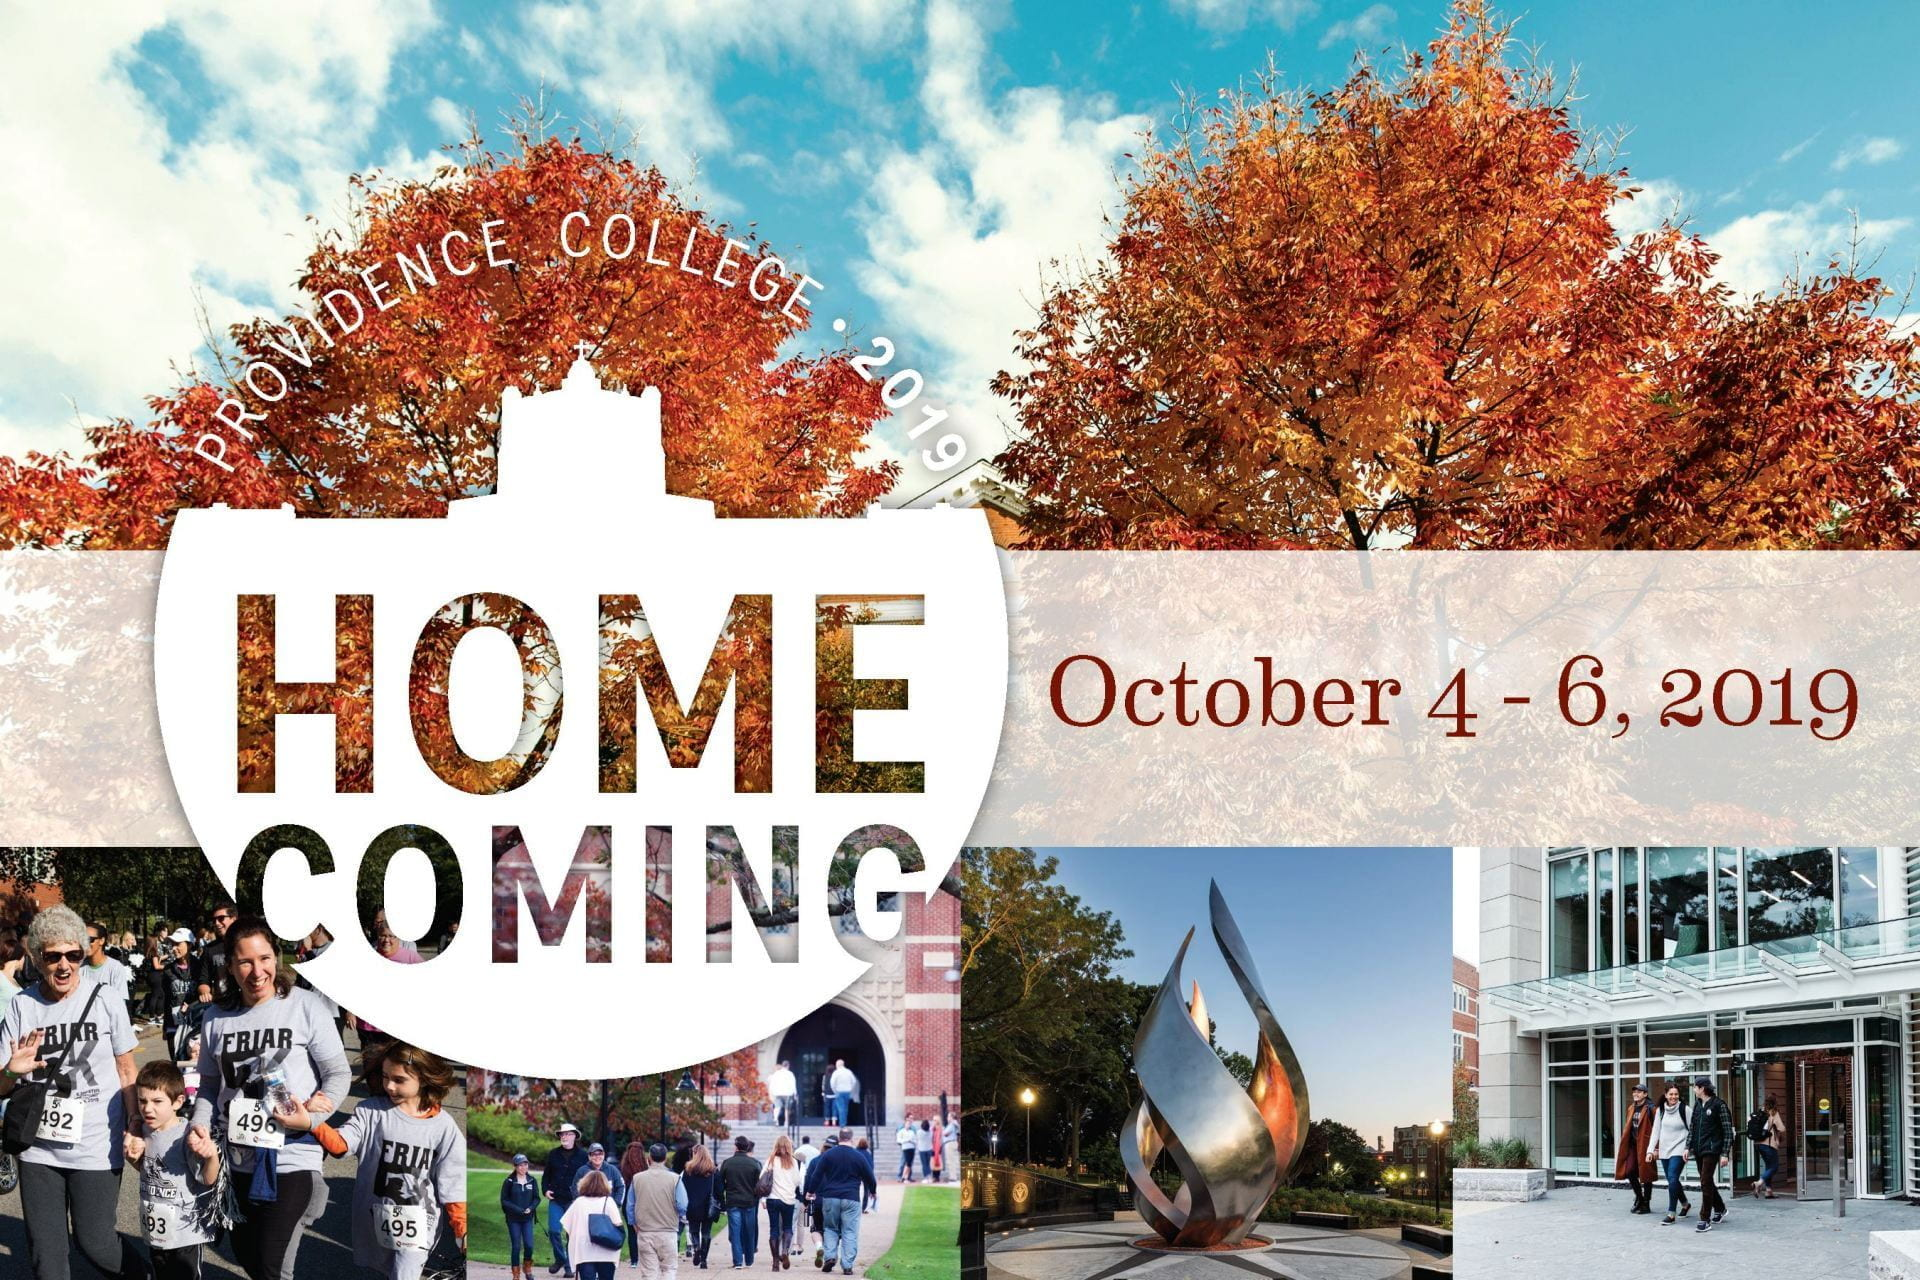 pc homecoming 2019 october 4-6 postcard image